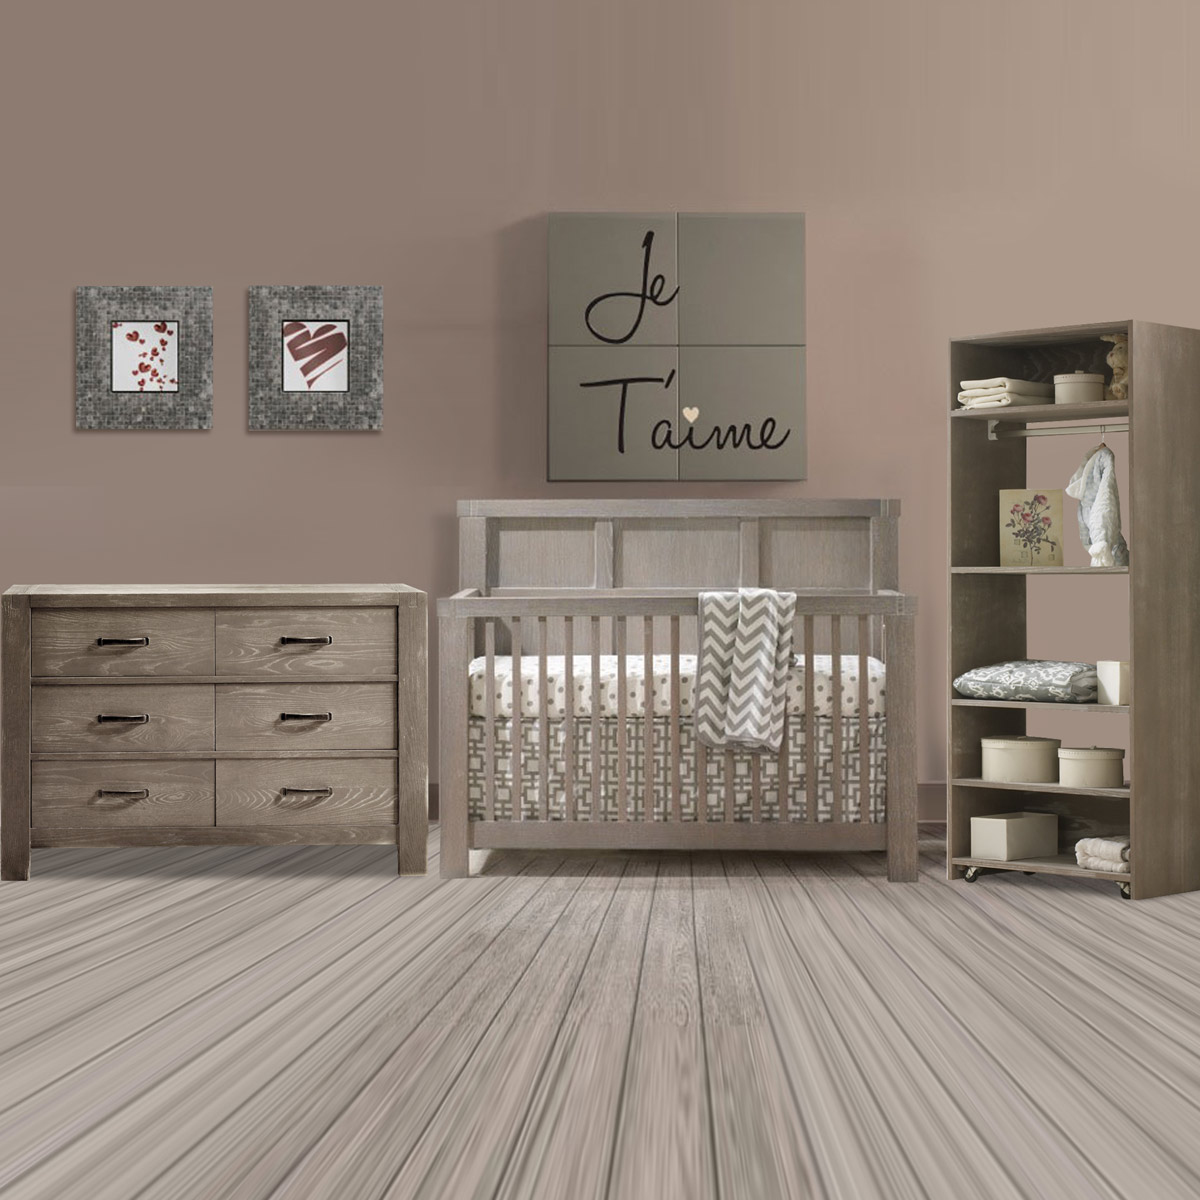 Natart crib for sale - Natart Rustico 3 Piece Nursery Set 4 In 1 Convertible Crib Double Dresser And Convertible Wardrobe System In Sugar Cane Free Shipping